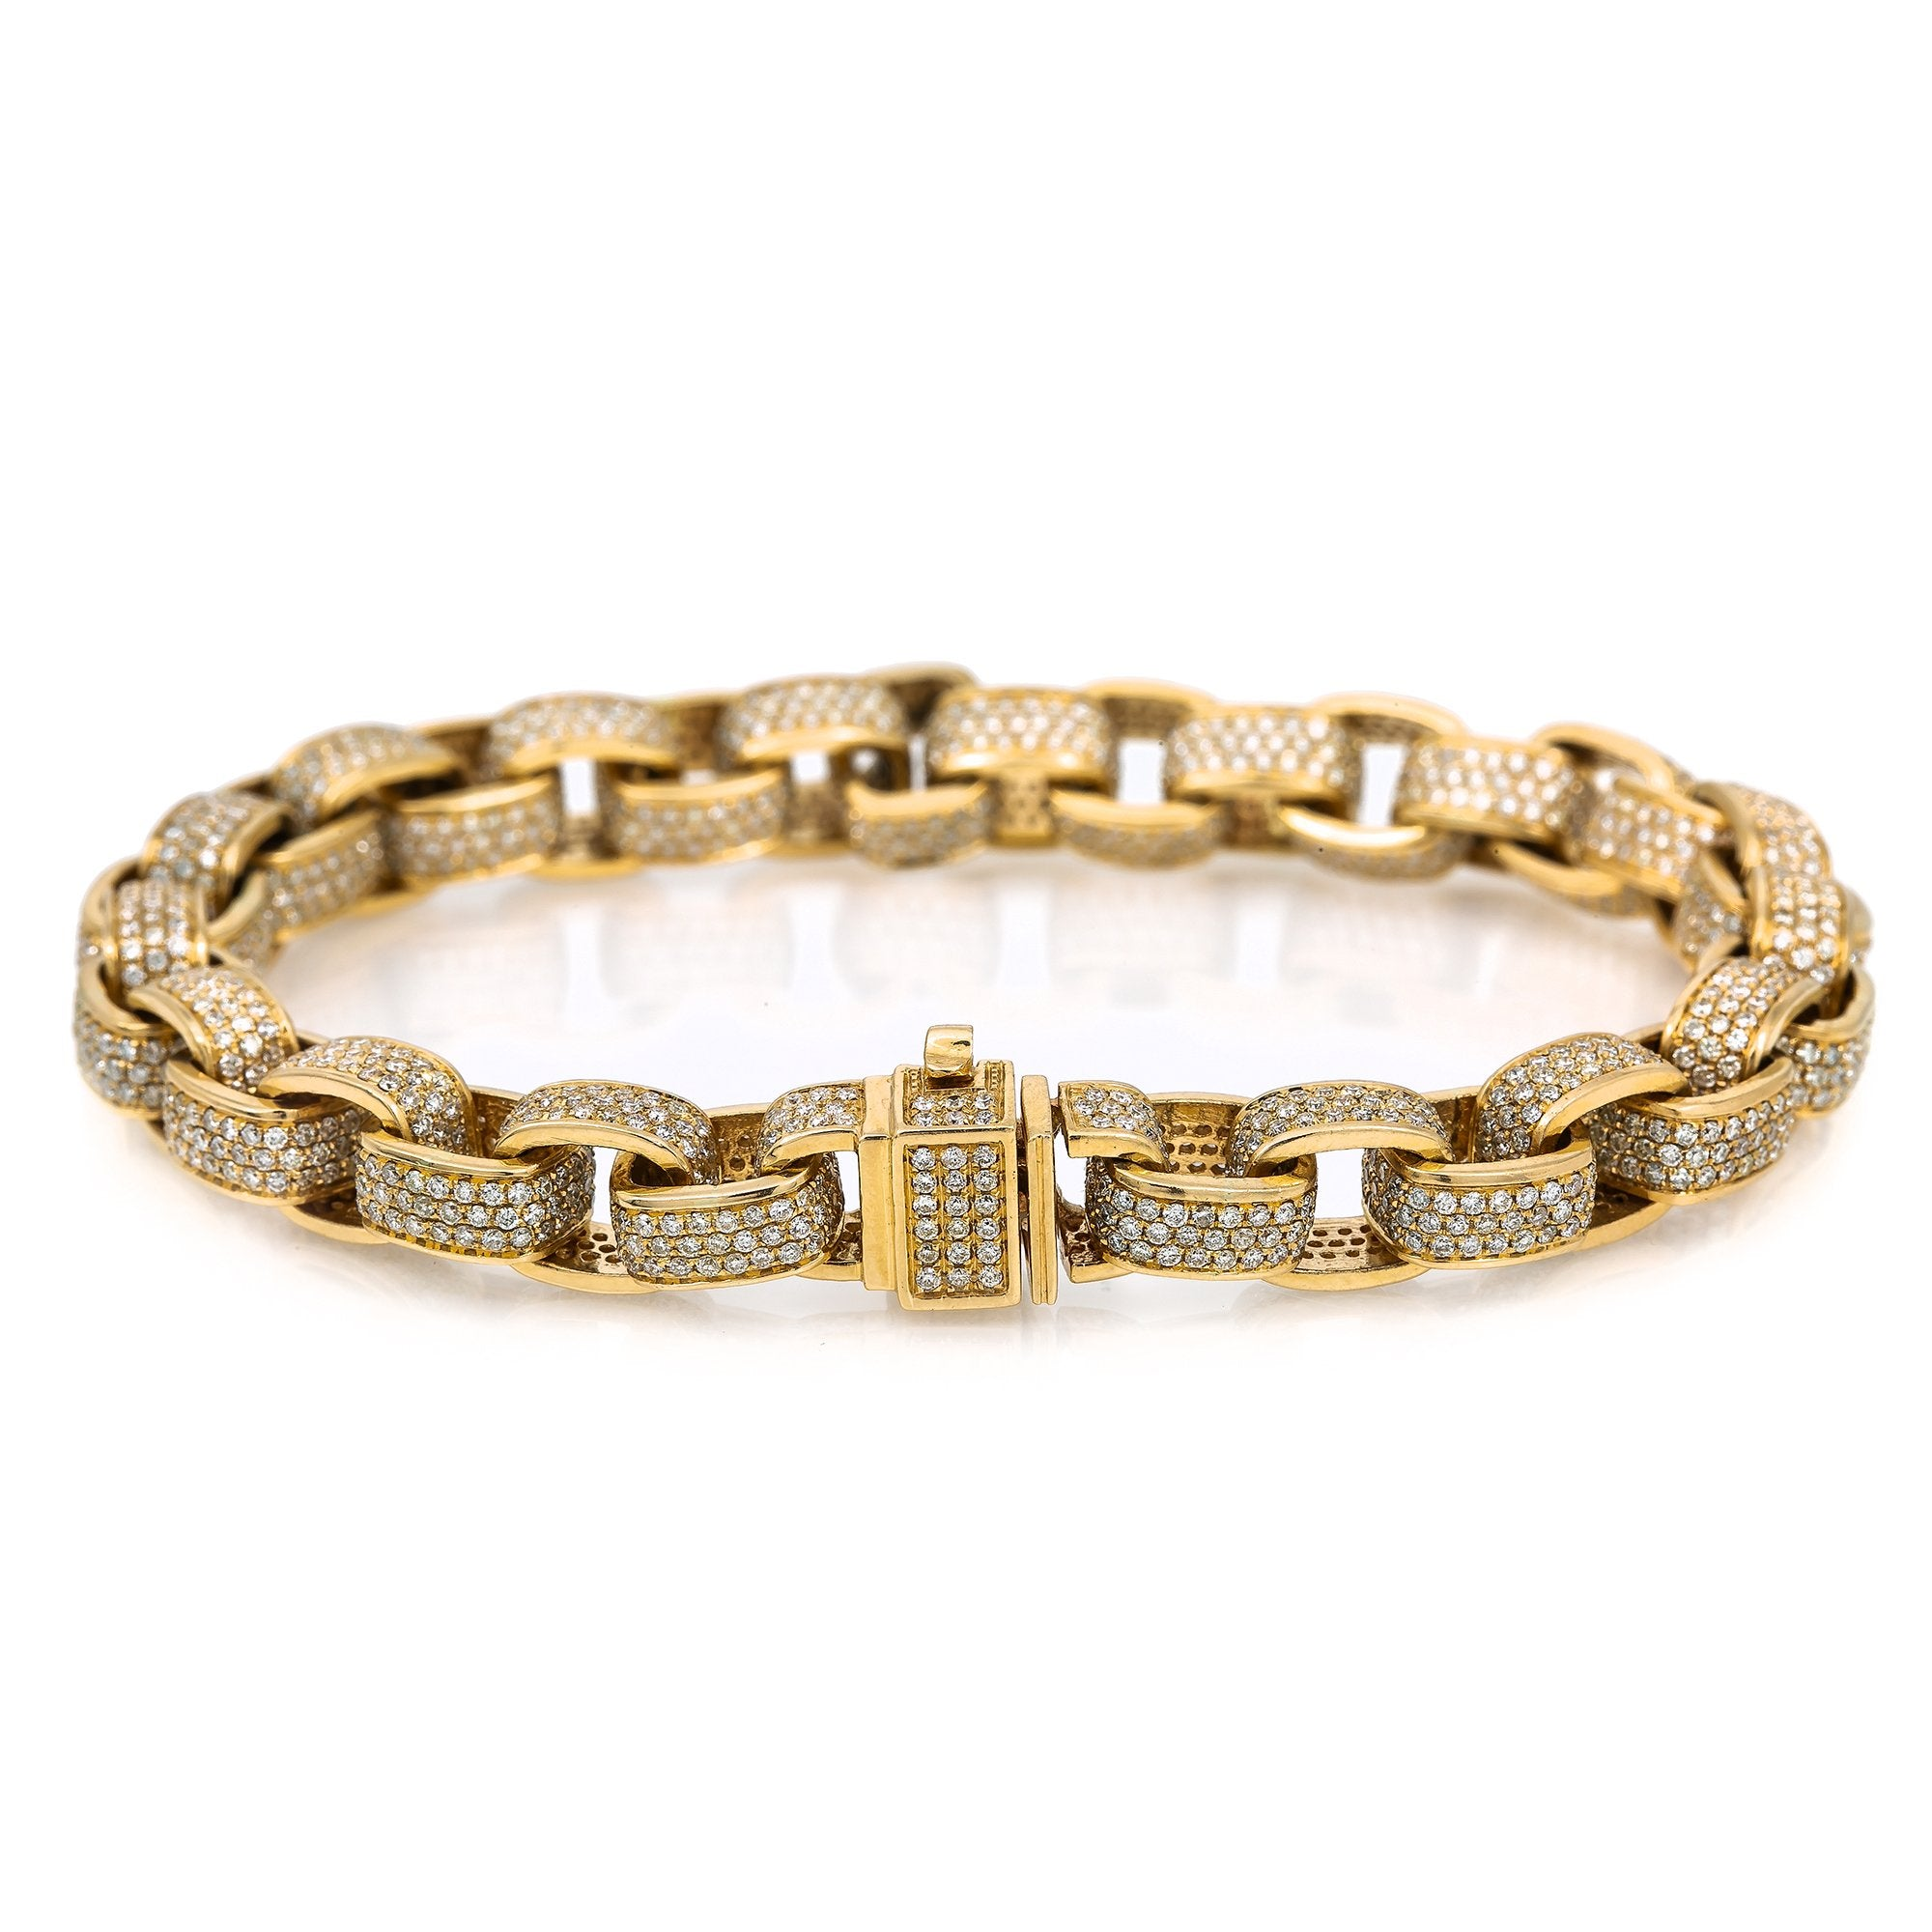 14K Yellow Gold Men's Custom Diamond Bracelet With 13.06 CT Diamonds